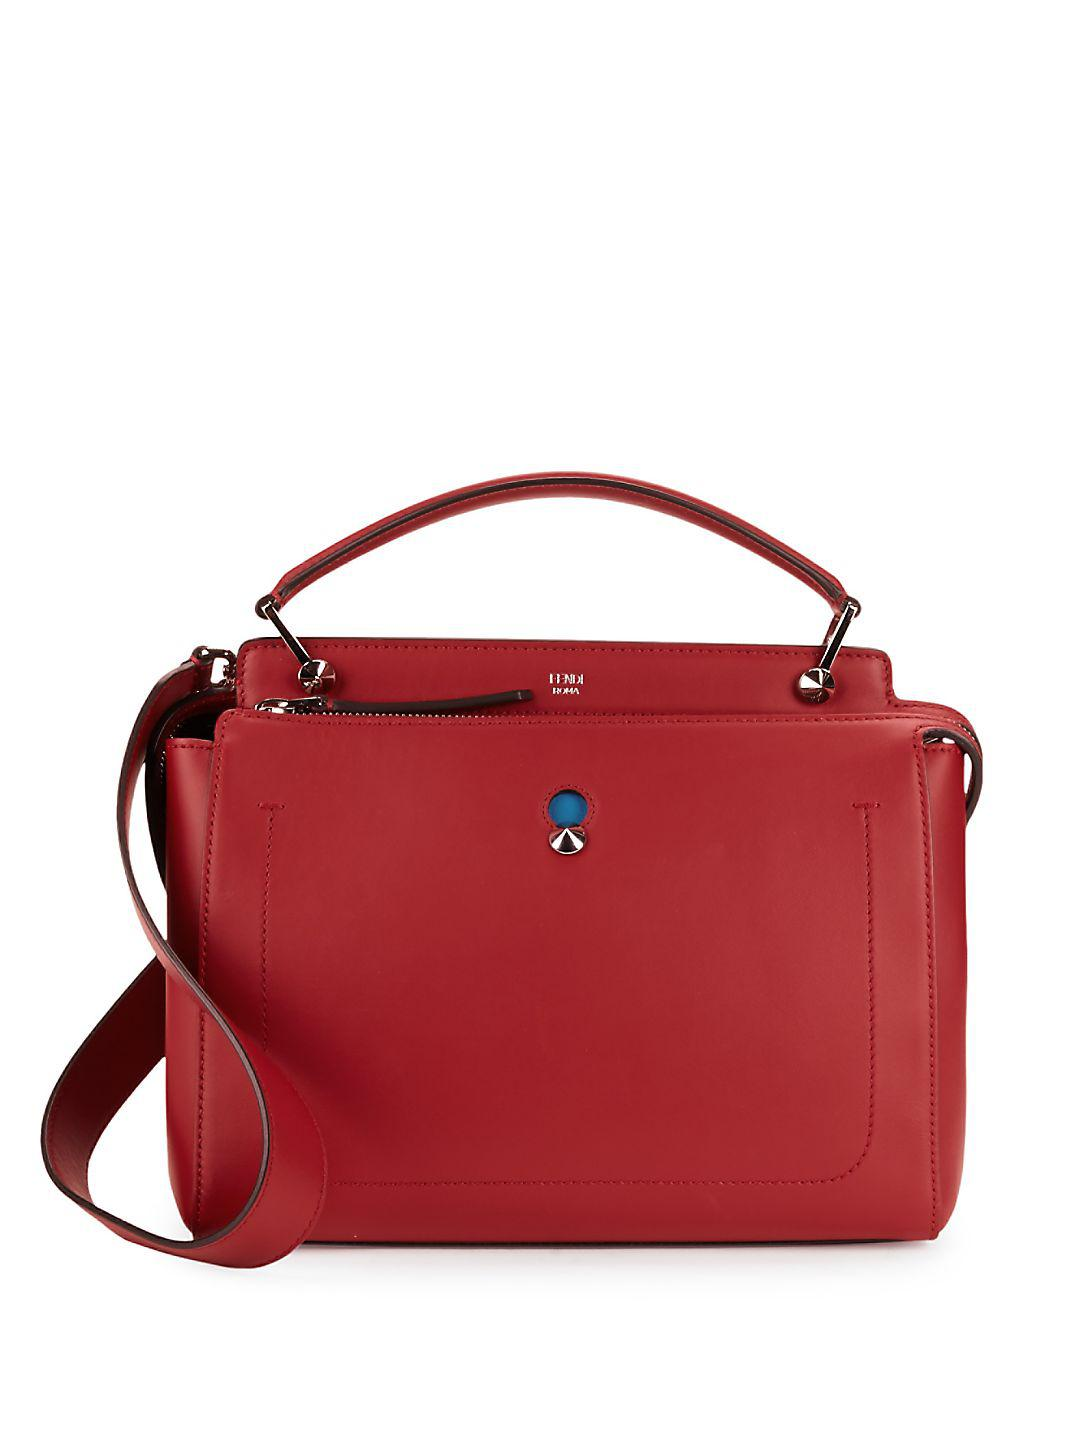 3e90b929a733 ... spain lyst fendi leather top handle bag in red 732d8 6060c